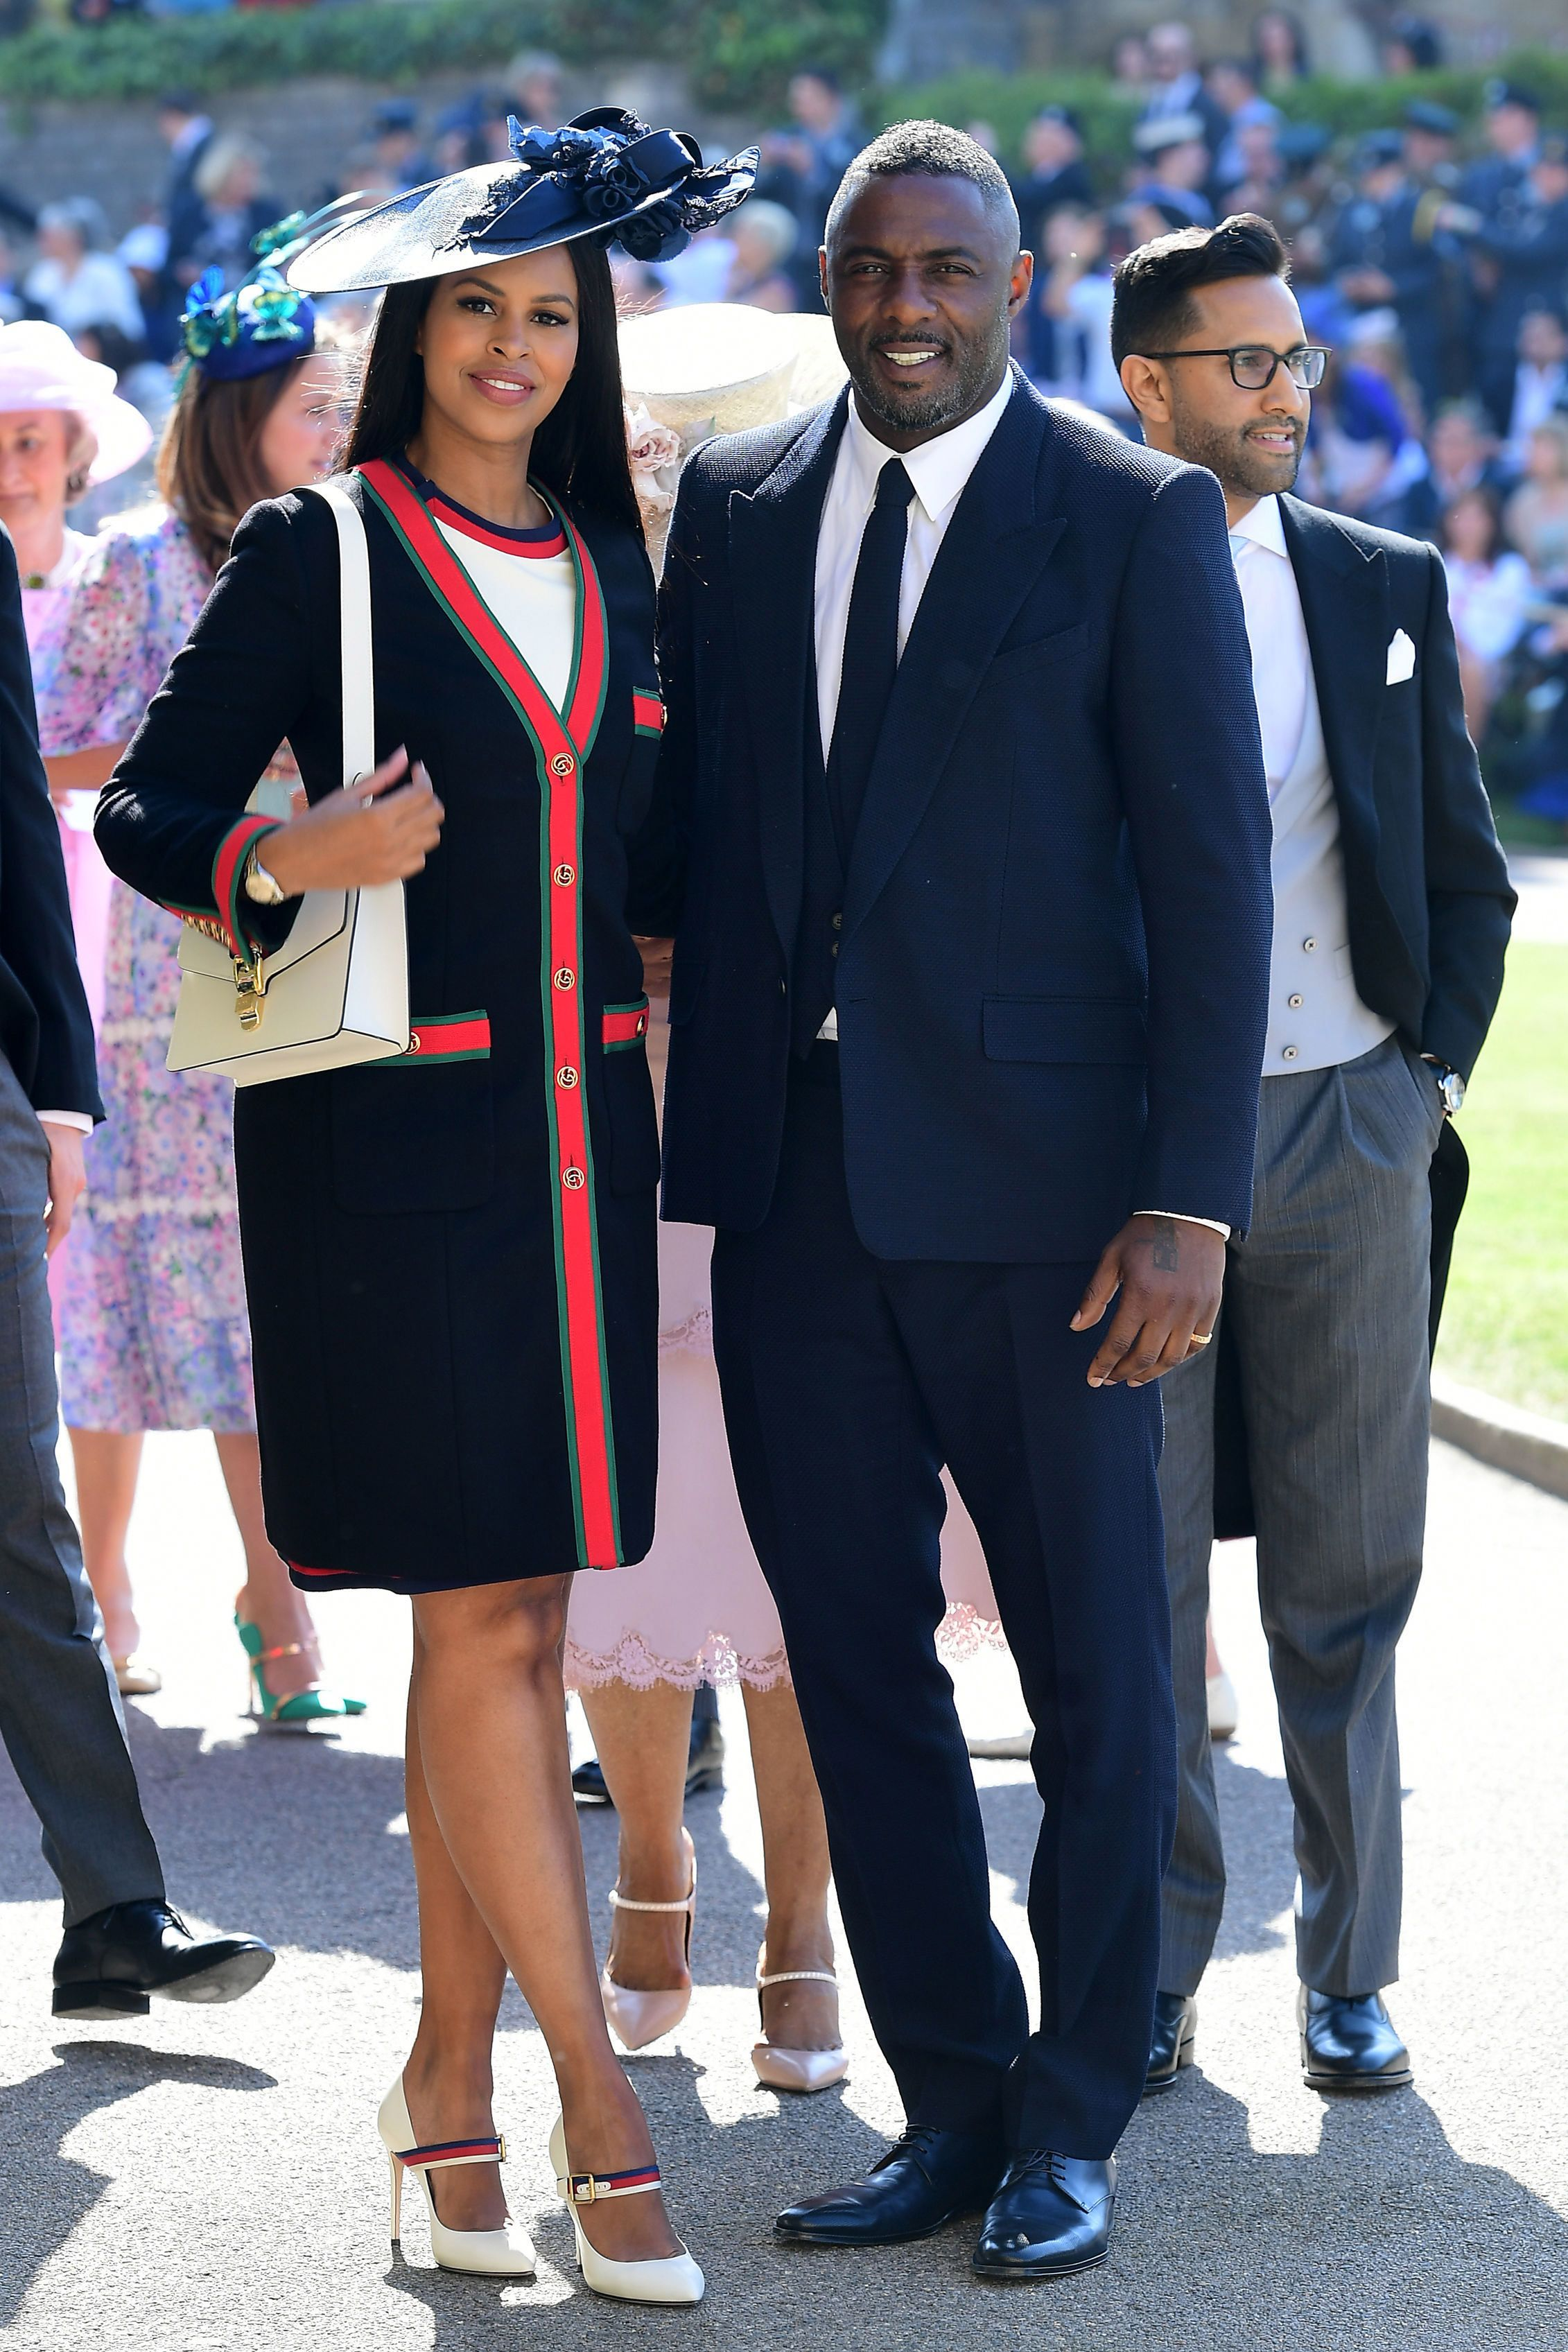 Idris Elba Just Gushed About Meghan Markle At A Dinner With Prince Charles pics